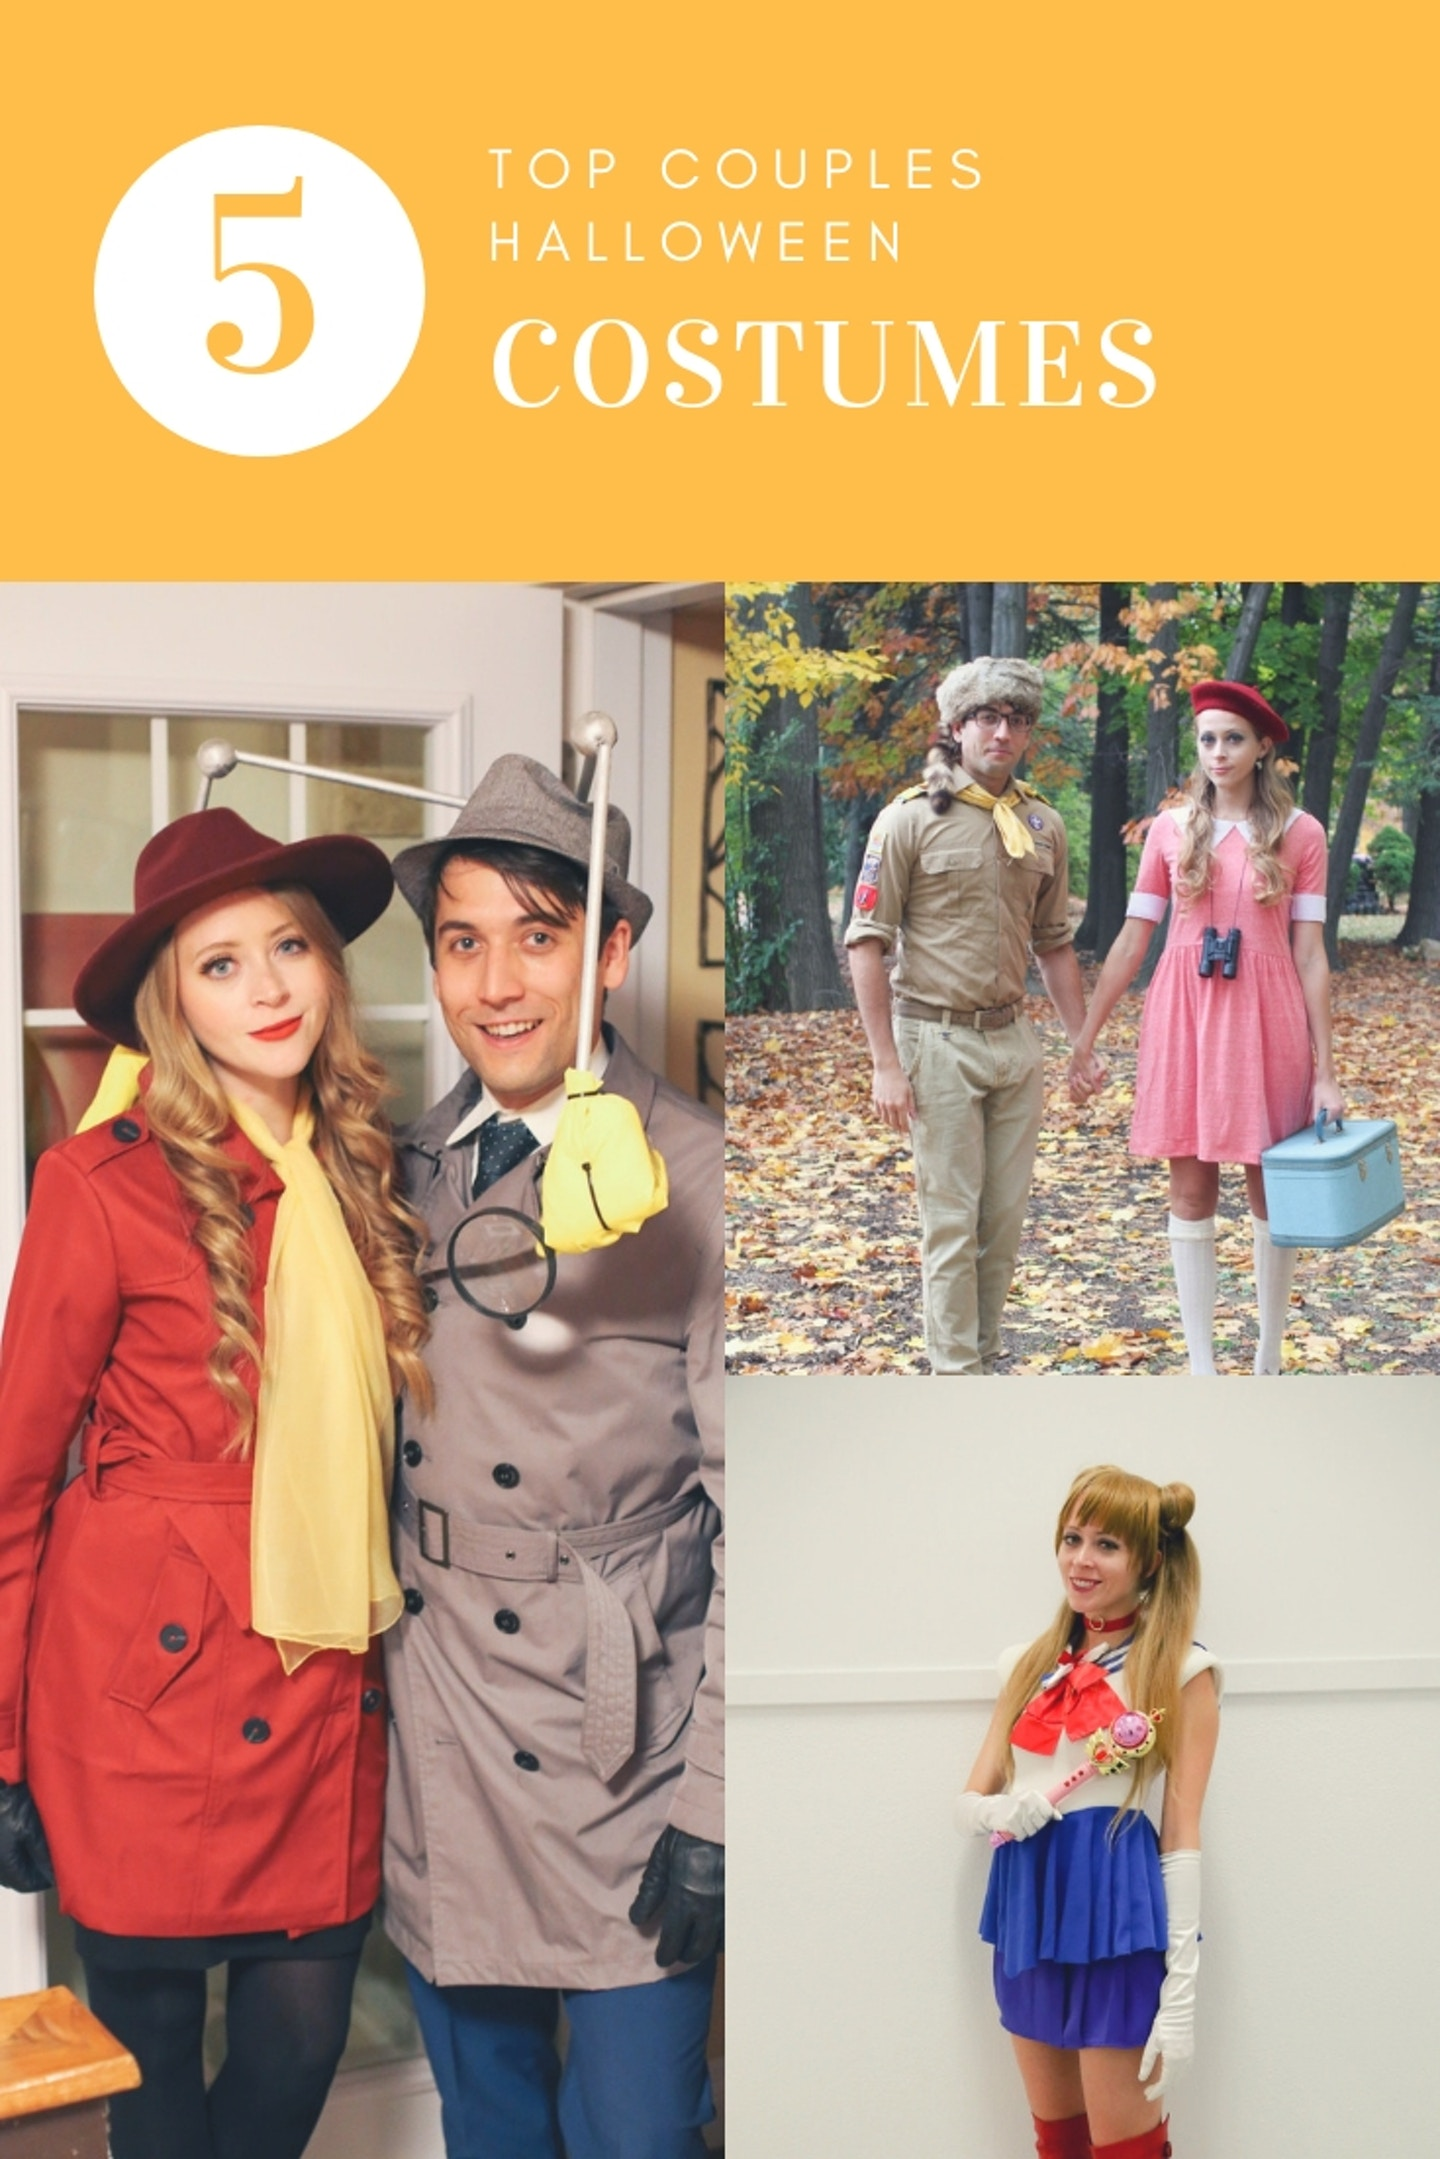 Top 5 Couples Halloween Costume Ideas